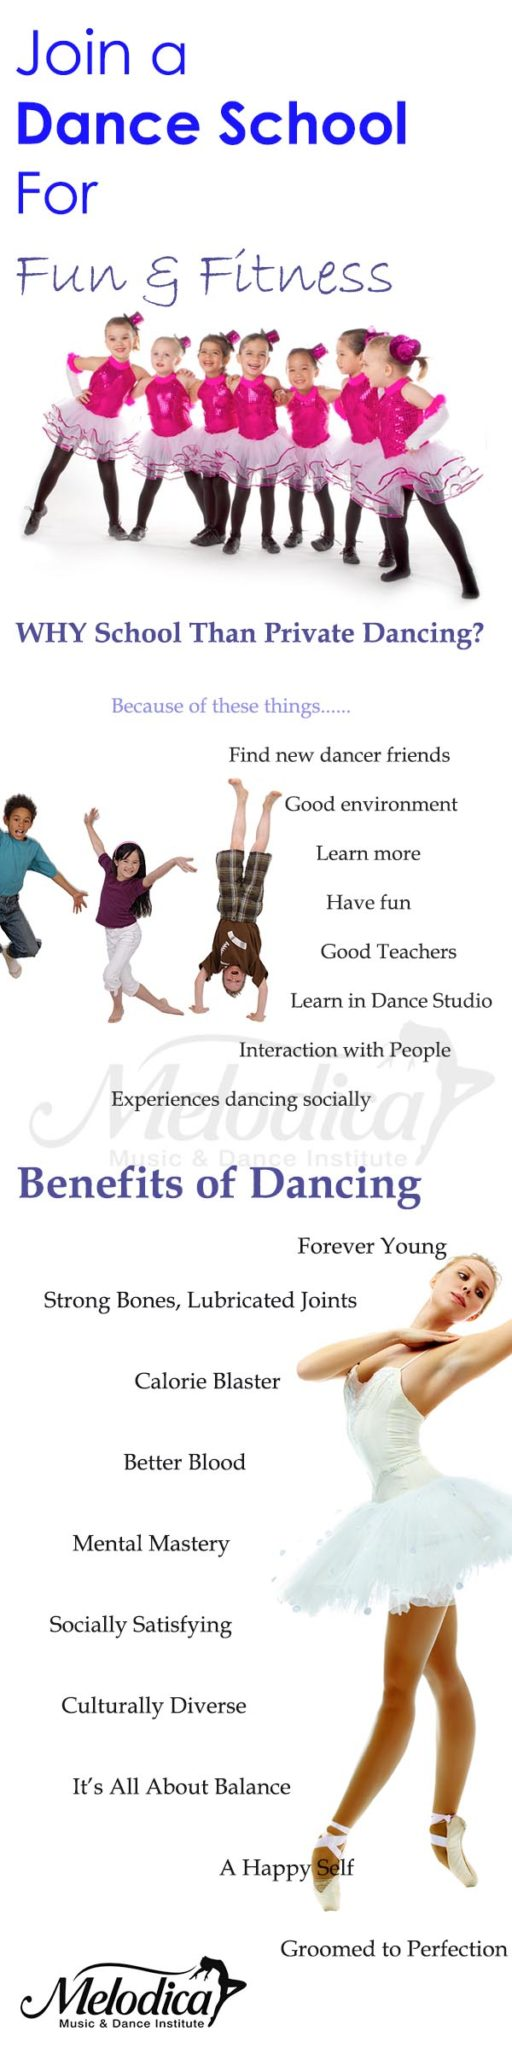 benefits of dance school - Join dancing school for fun and joy